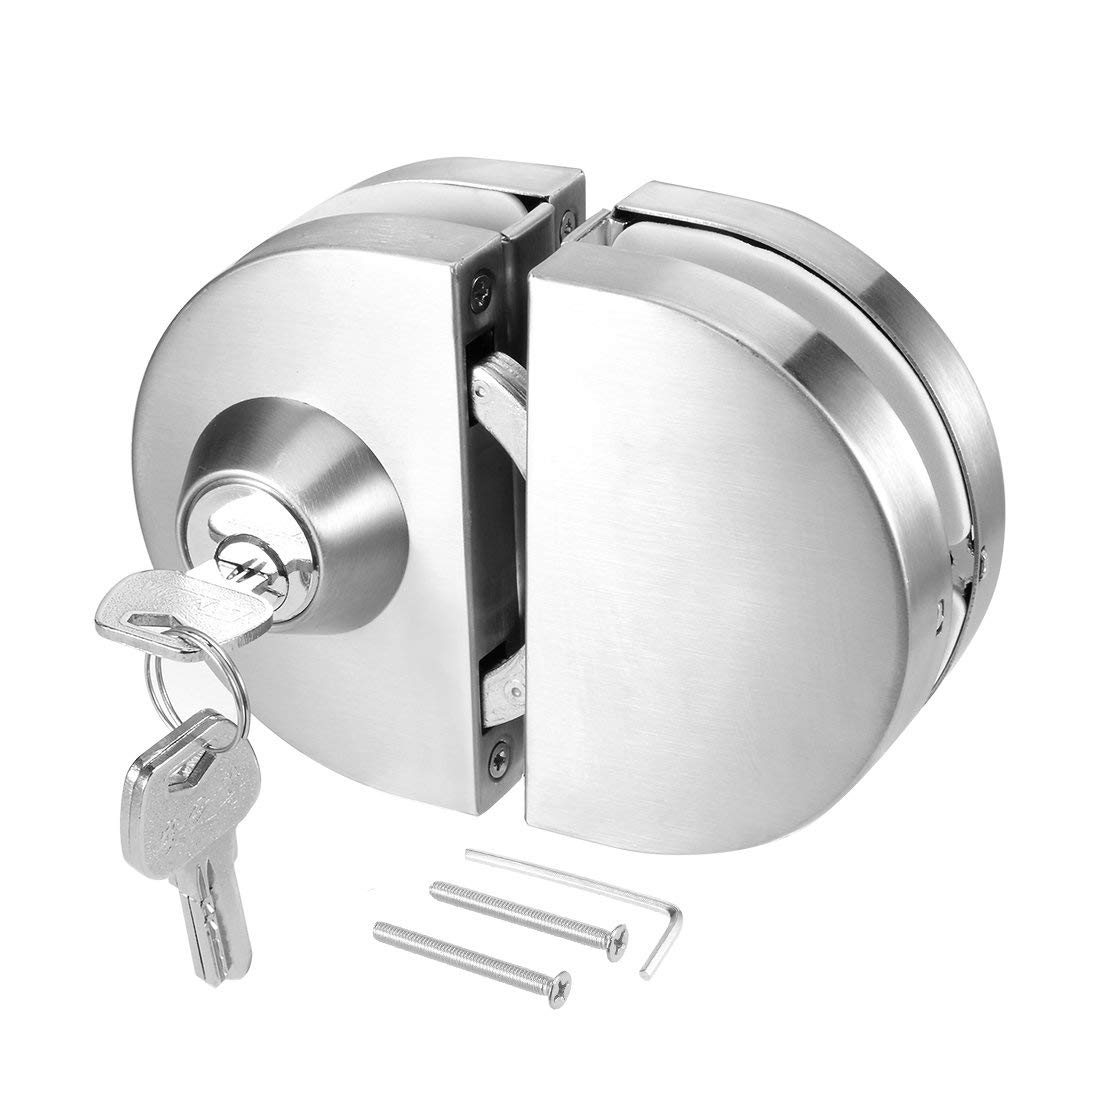 Ranbo 304 Stainless Steel Commercial Durable Metal Chrome 10 mm -12 mm Glass Door Anti-Theft Security Lock, Double Swing Hinged Frameless Push Sliding Gate Lock with 3 Keys by Ranbo